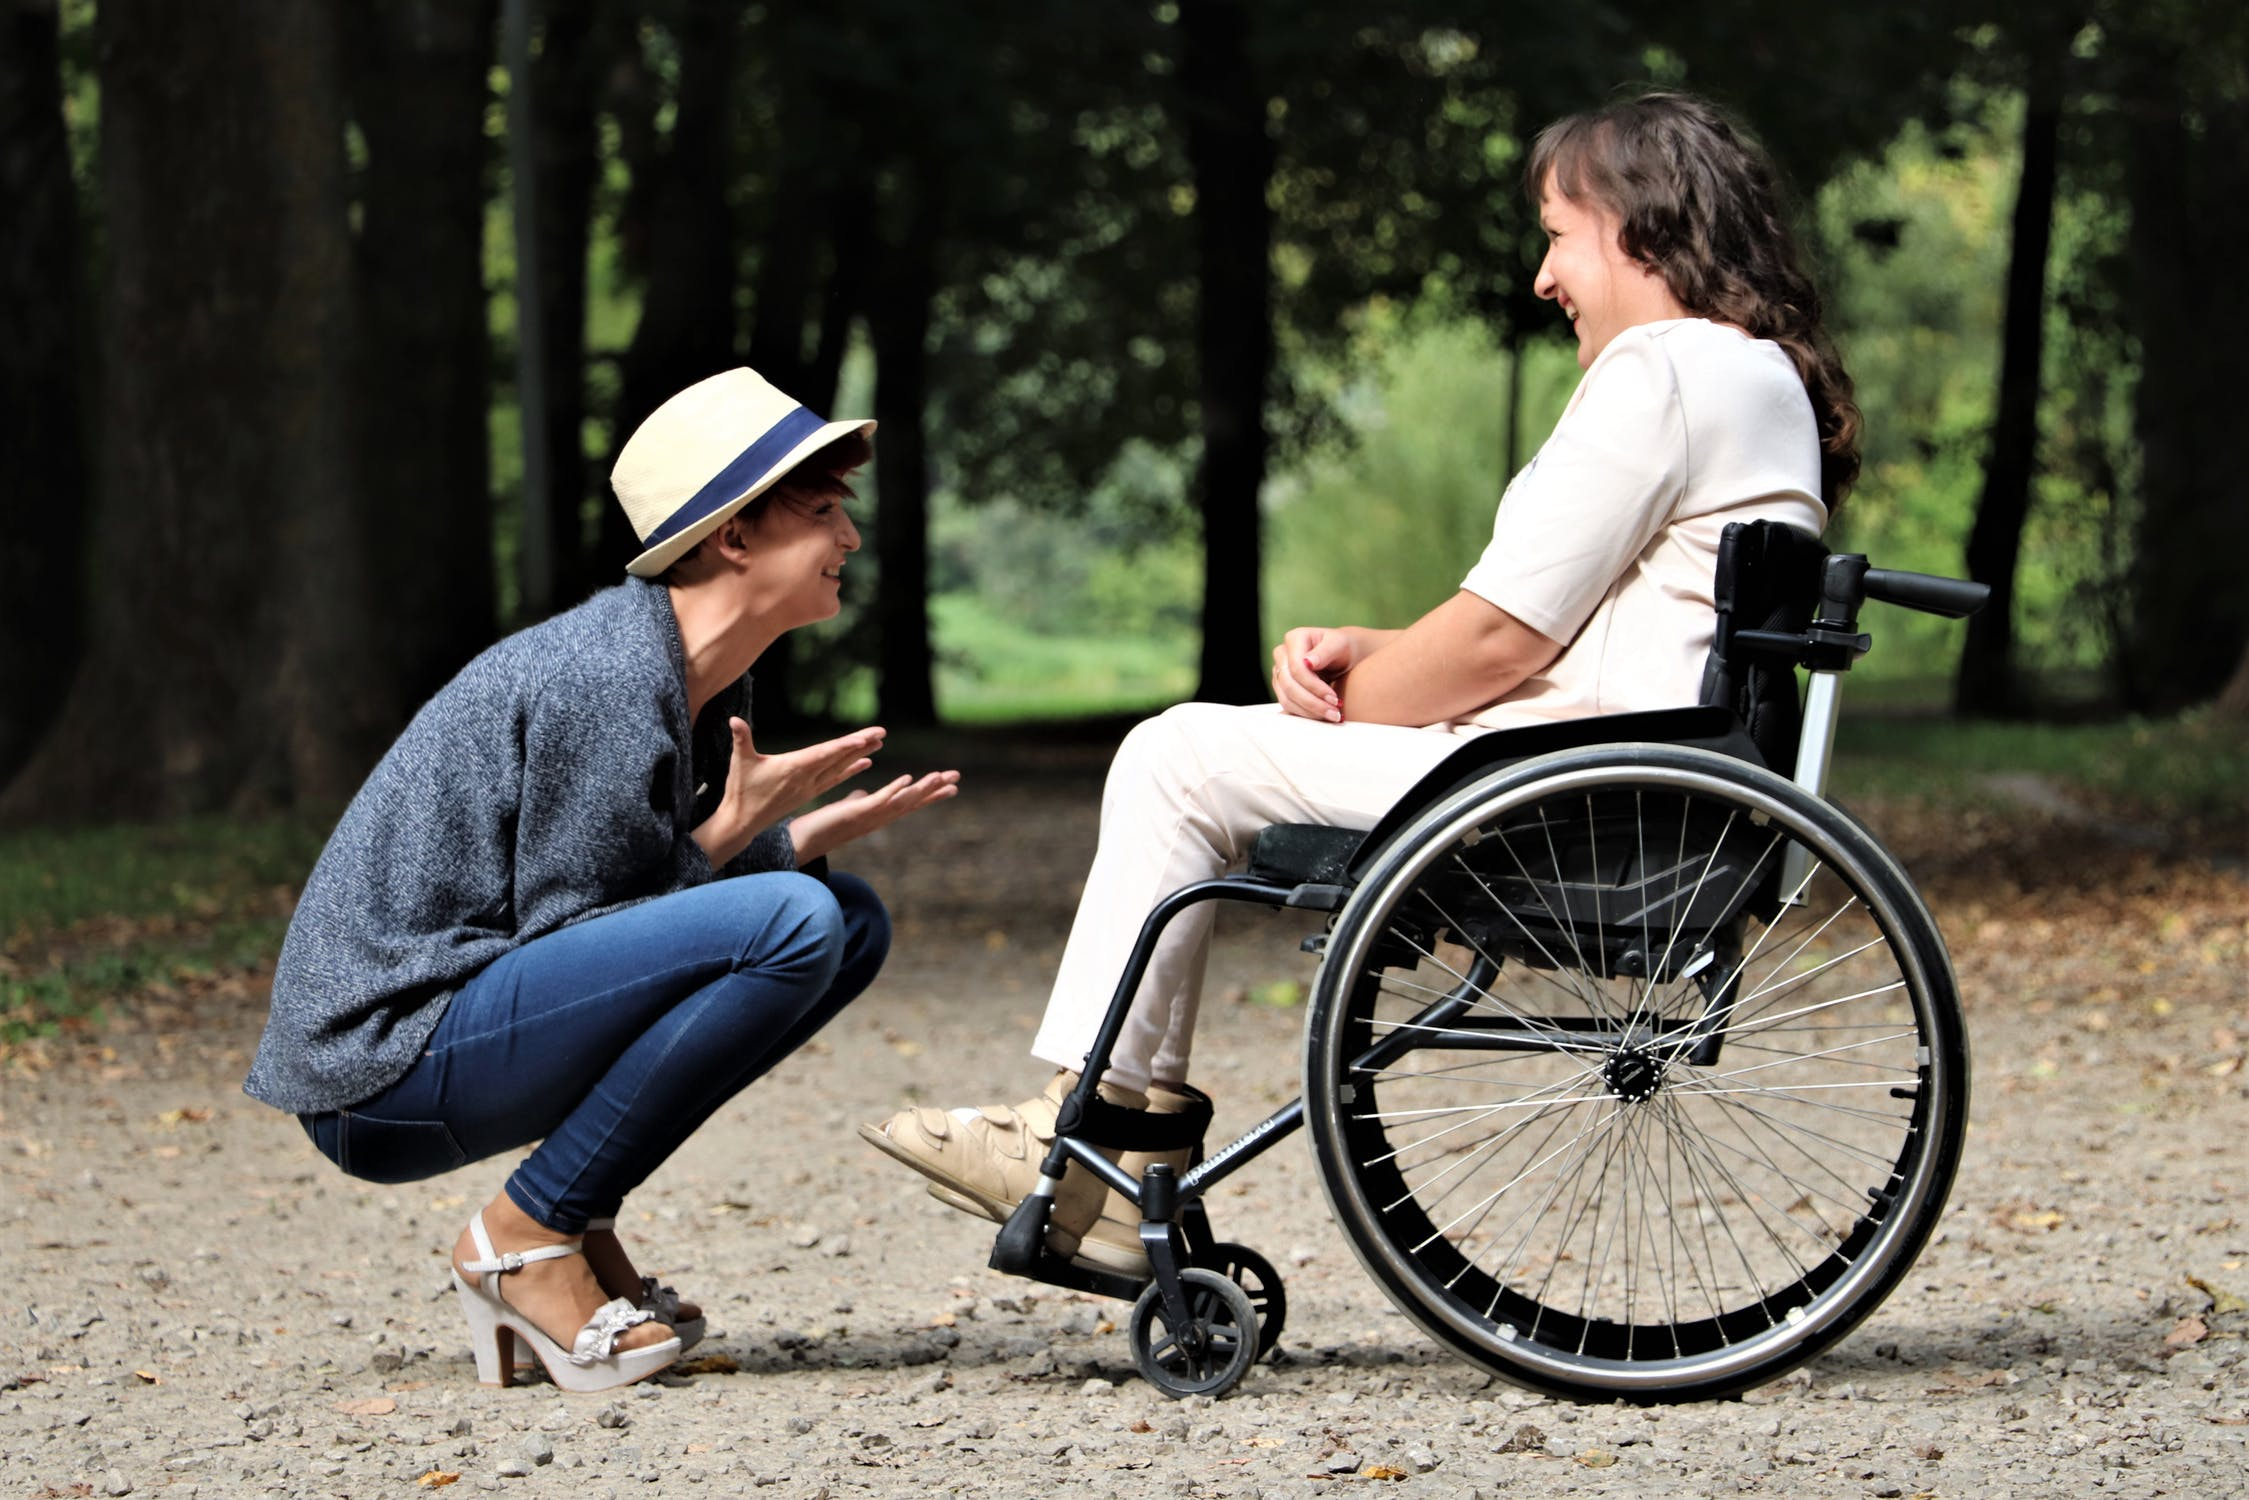 A woman who uses a wheelchair laughing with a friend. Photo by pexels user Judita Tamošiūnaitė. Used courtesy of pexels.com.